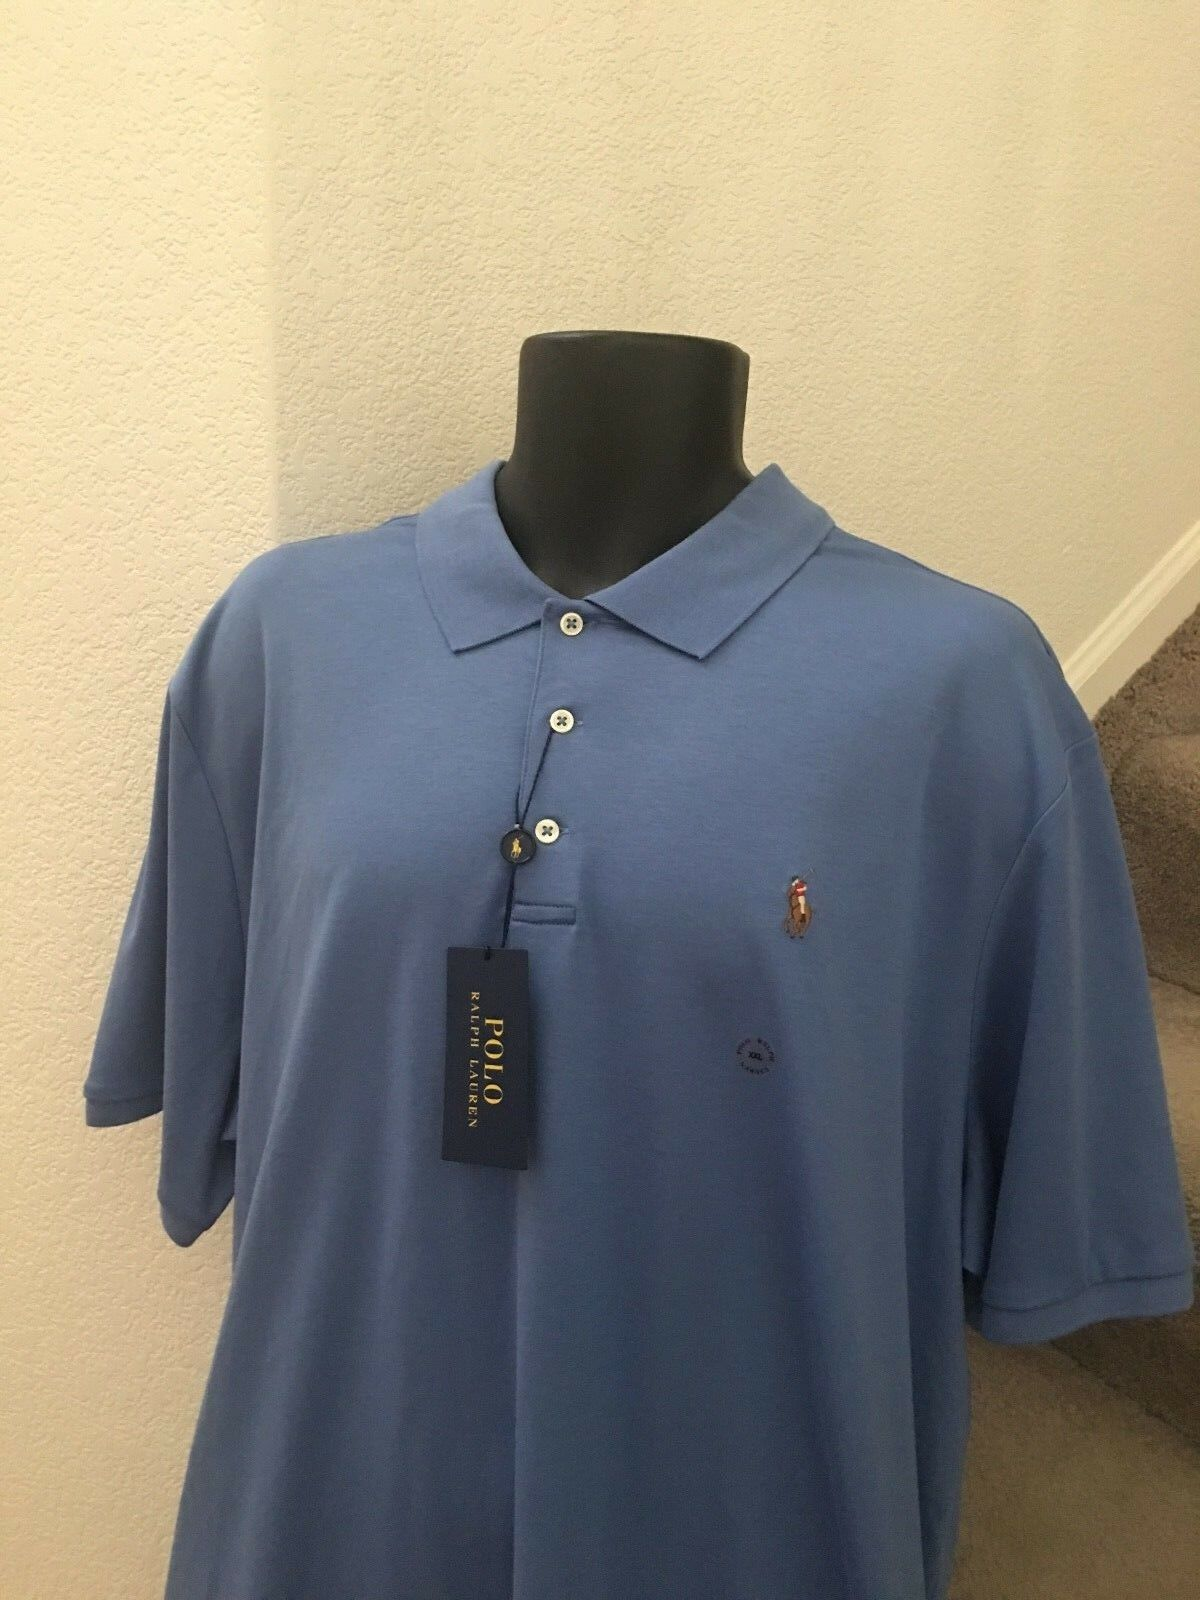 Polo Ralph Lauren Mens Classic Fit Soft Touch Cotton Polo Shirt Size XXL bluee